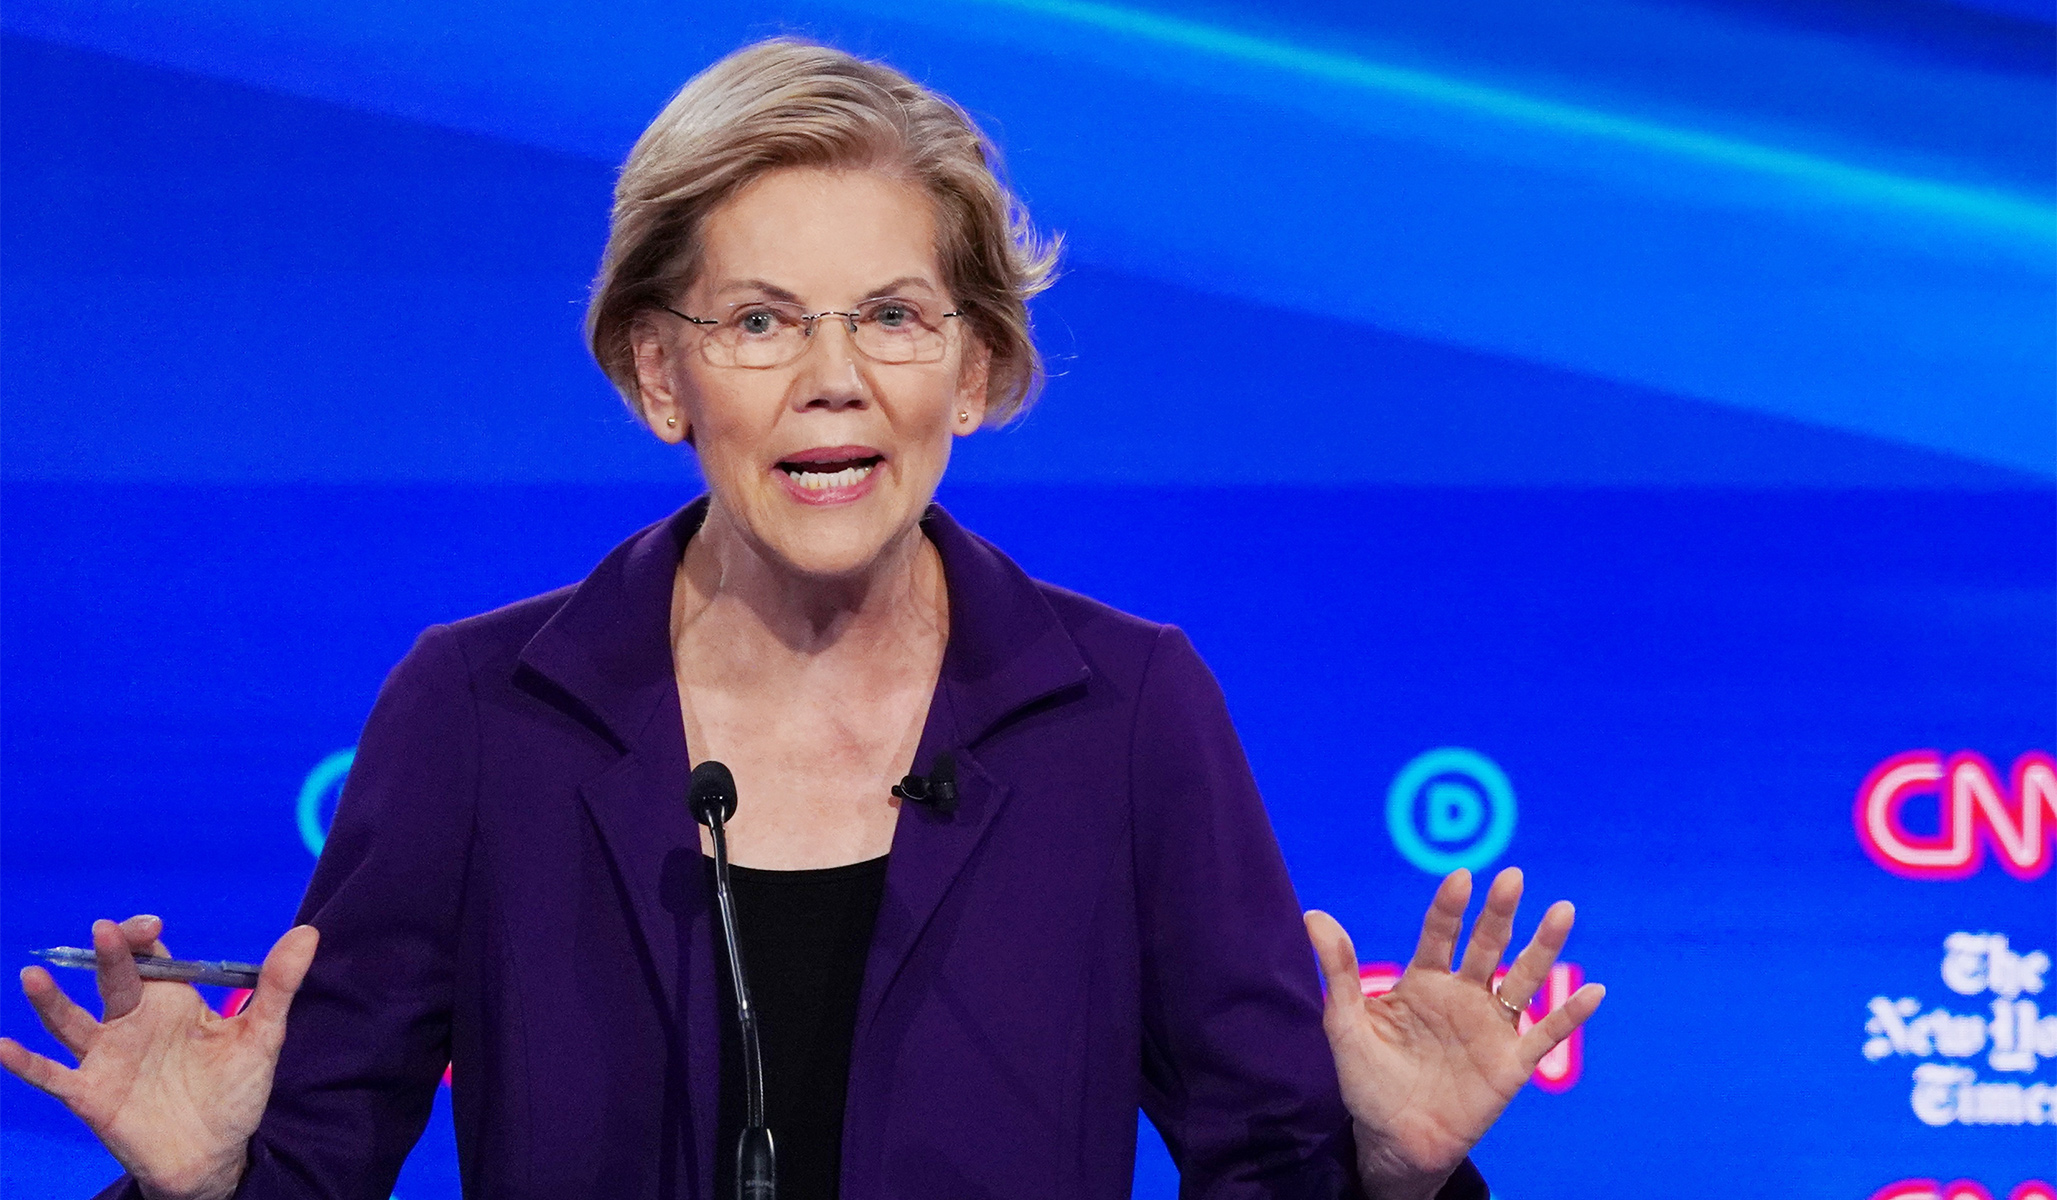 Warren Pledges to Ban for-Profit Charter Schools in New Education Plan